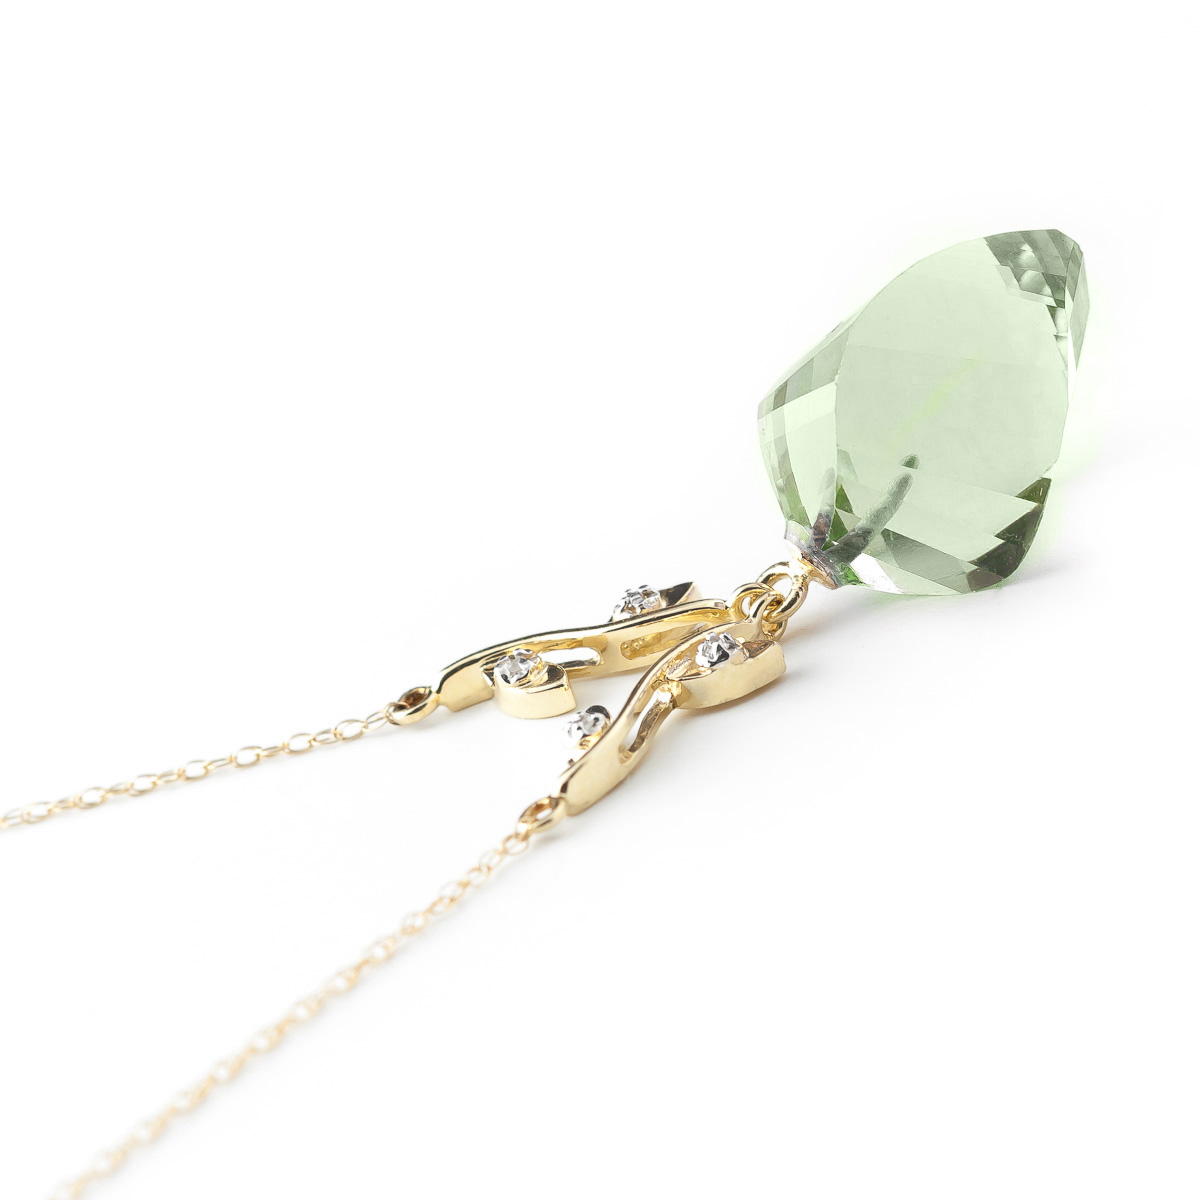 Twisted Briolette Cut Green Amethyst Pendant Necklace 13.02 ctw in 9ct Gold